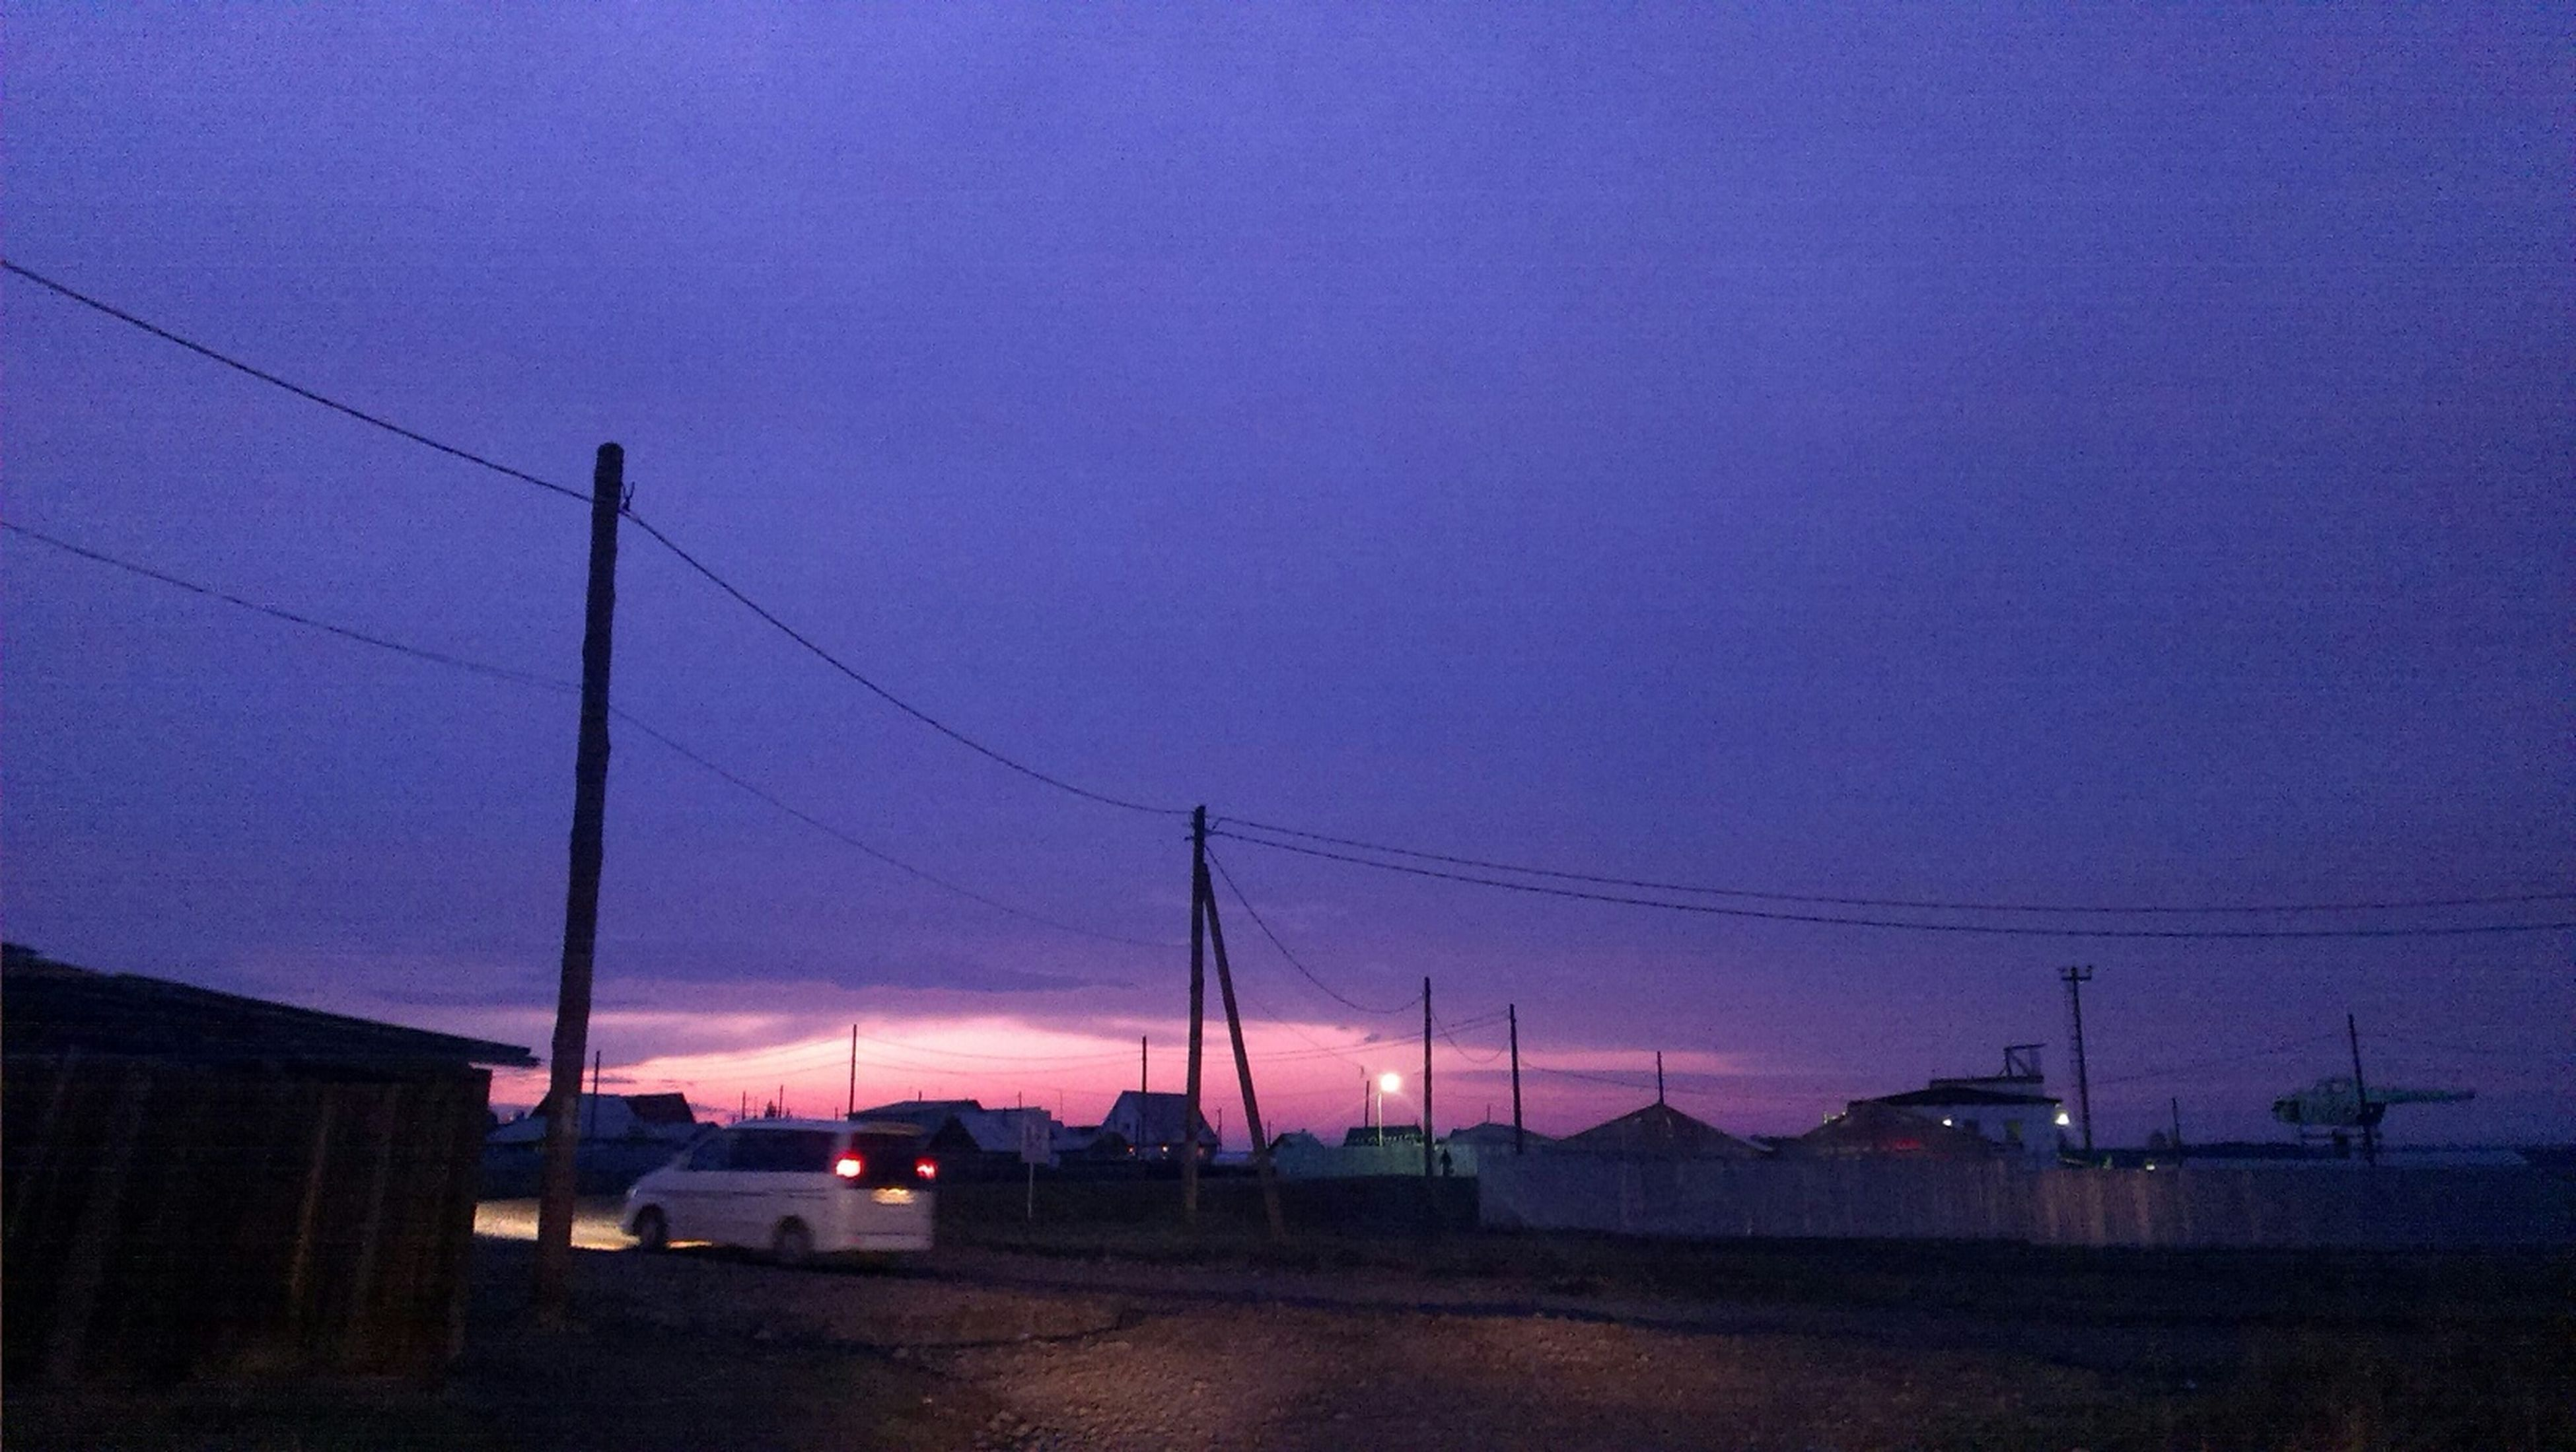 sunset, power line, electricity pylon, electricity, sky, building exterior, street light, power supply, built structure, cable, dusk, road, blue, silhouette, copy space, architecture, fuel and power generation, street, clear sky, transportation